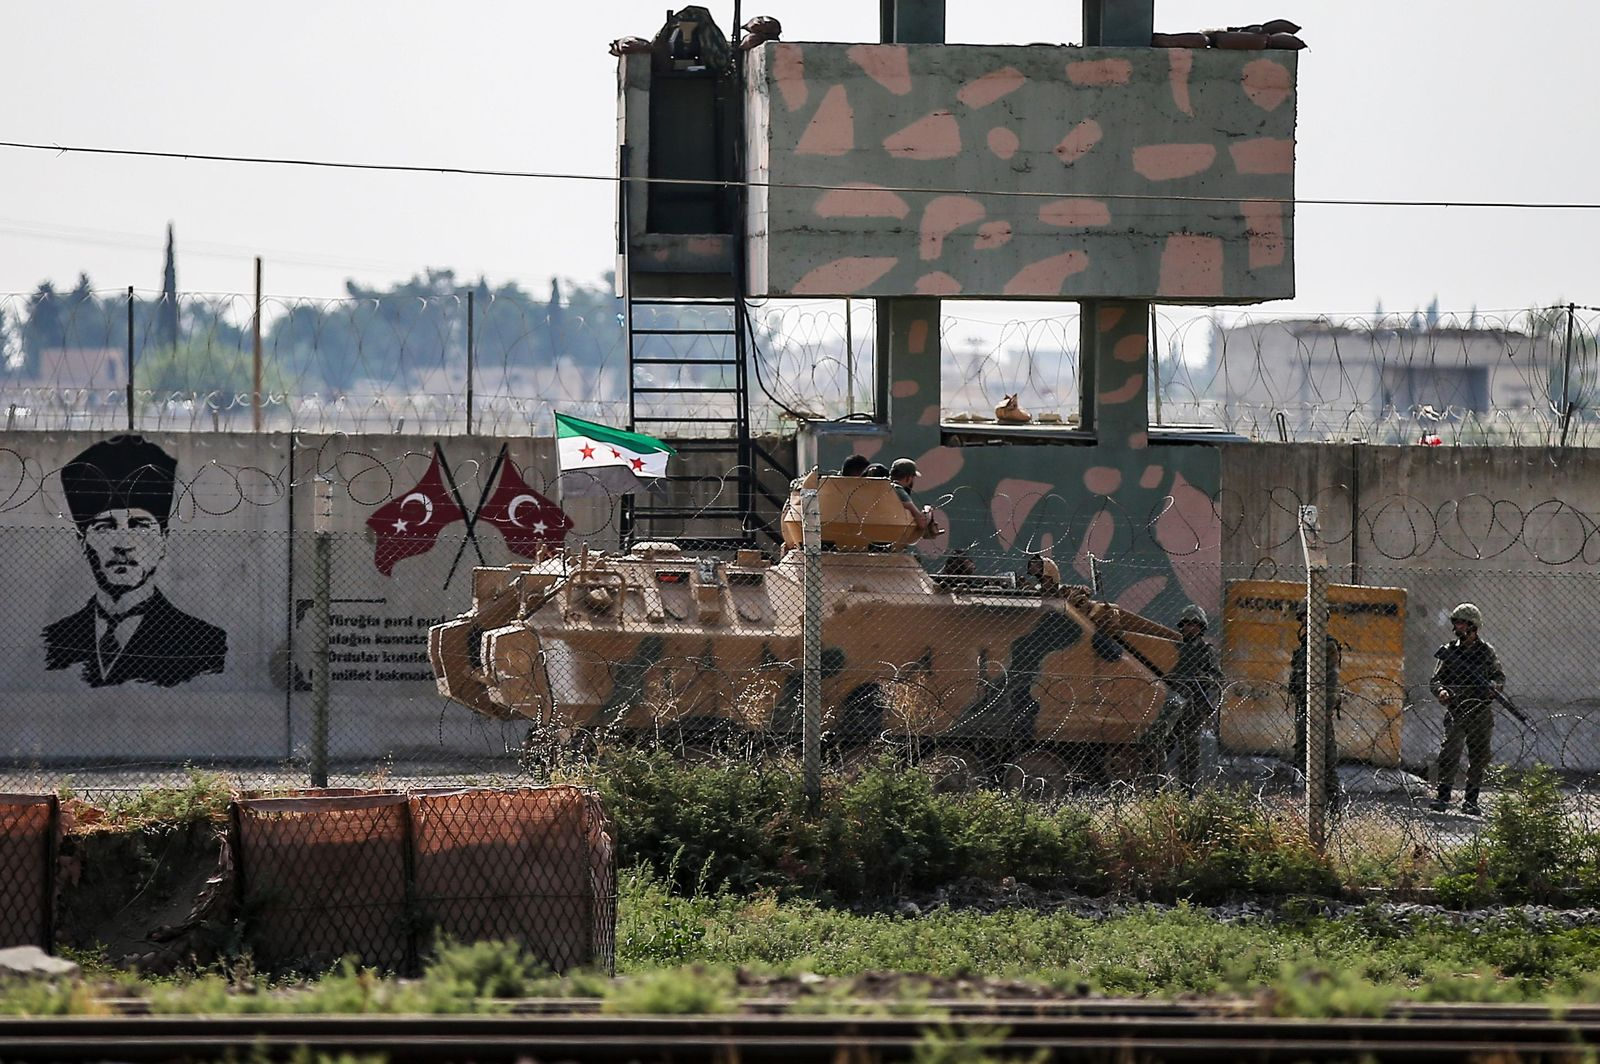 Turkish-backed Syrian opposition fighters on an armoured personnel carrier drive to cross the border into Syria, in Akcakale, Sanliurfa province, southeastern Turkey, Friday, Oct. 18, 2019. (AP Photo/Emrah Gurel)